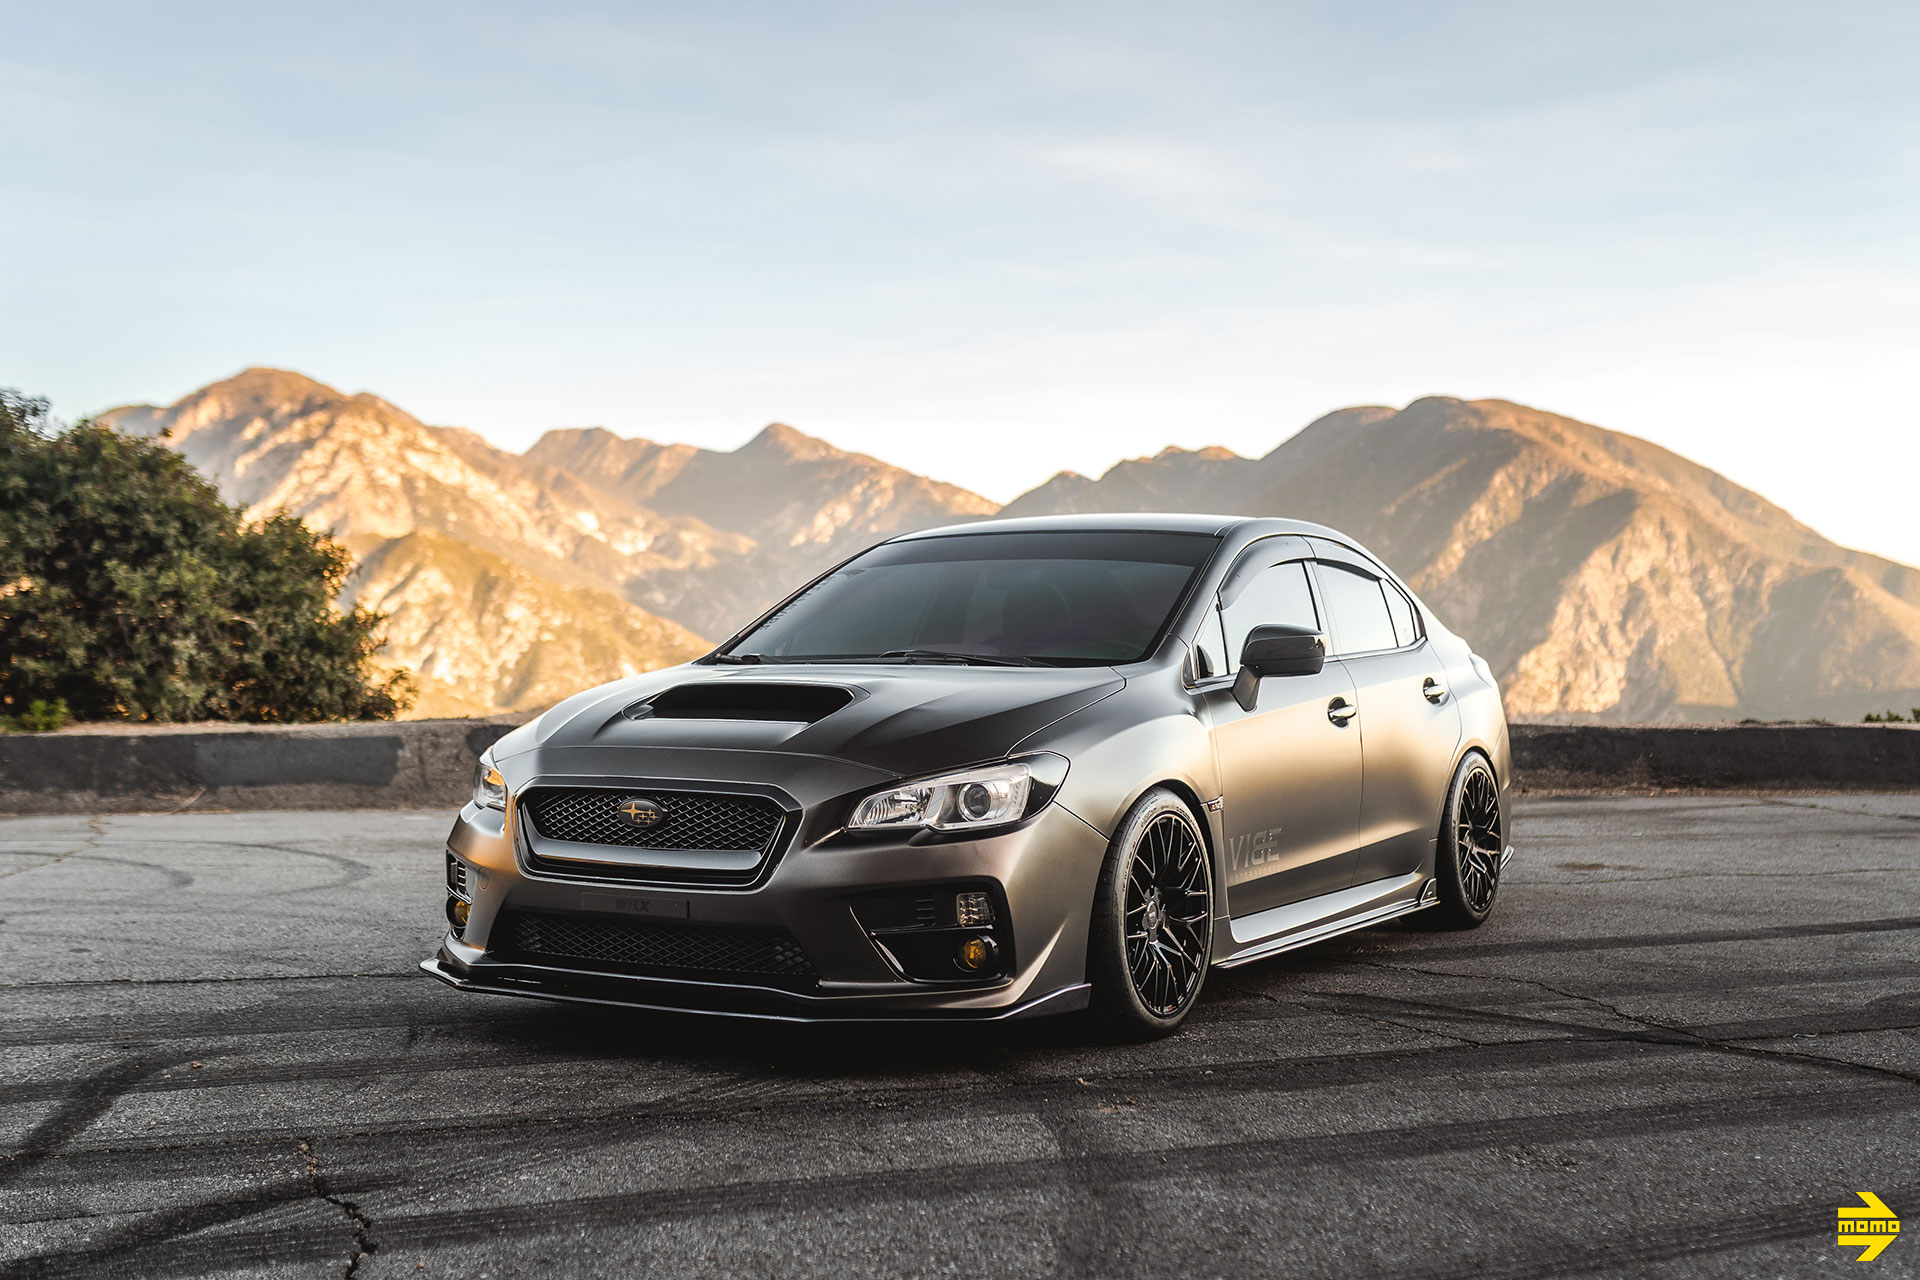 Metallic Rootbeer Brown Subaru WRX Evo Eye - MOMO Catania Wheels in Gloss Black